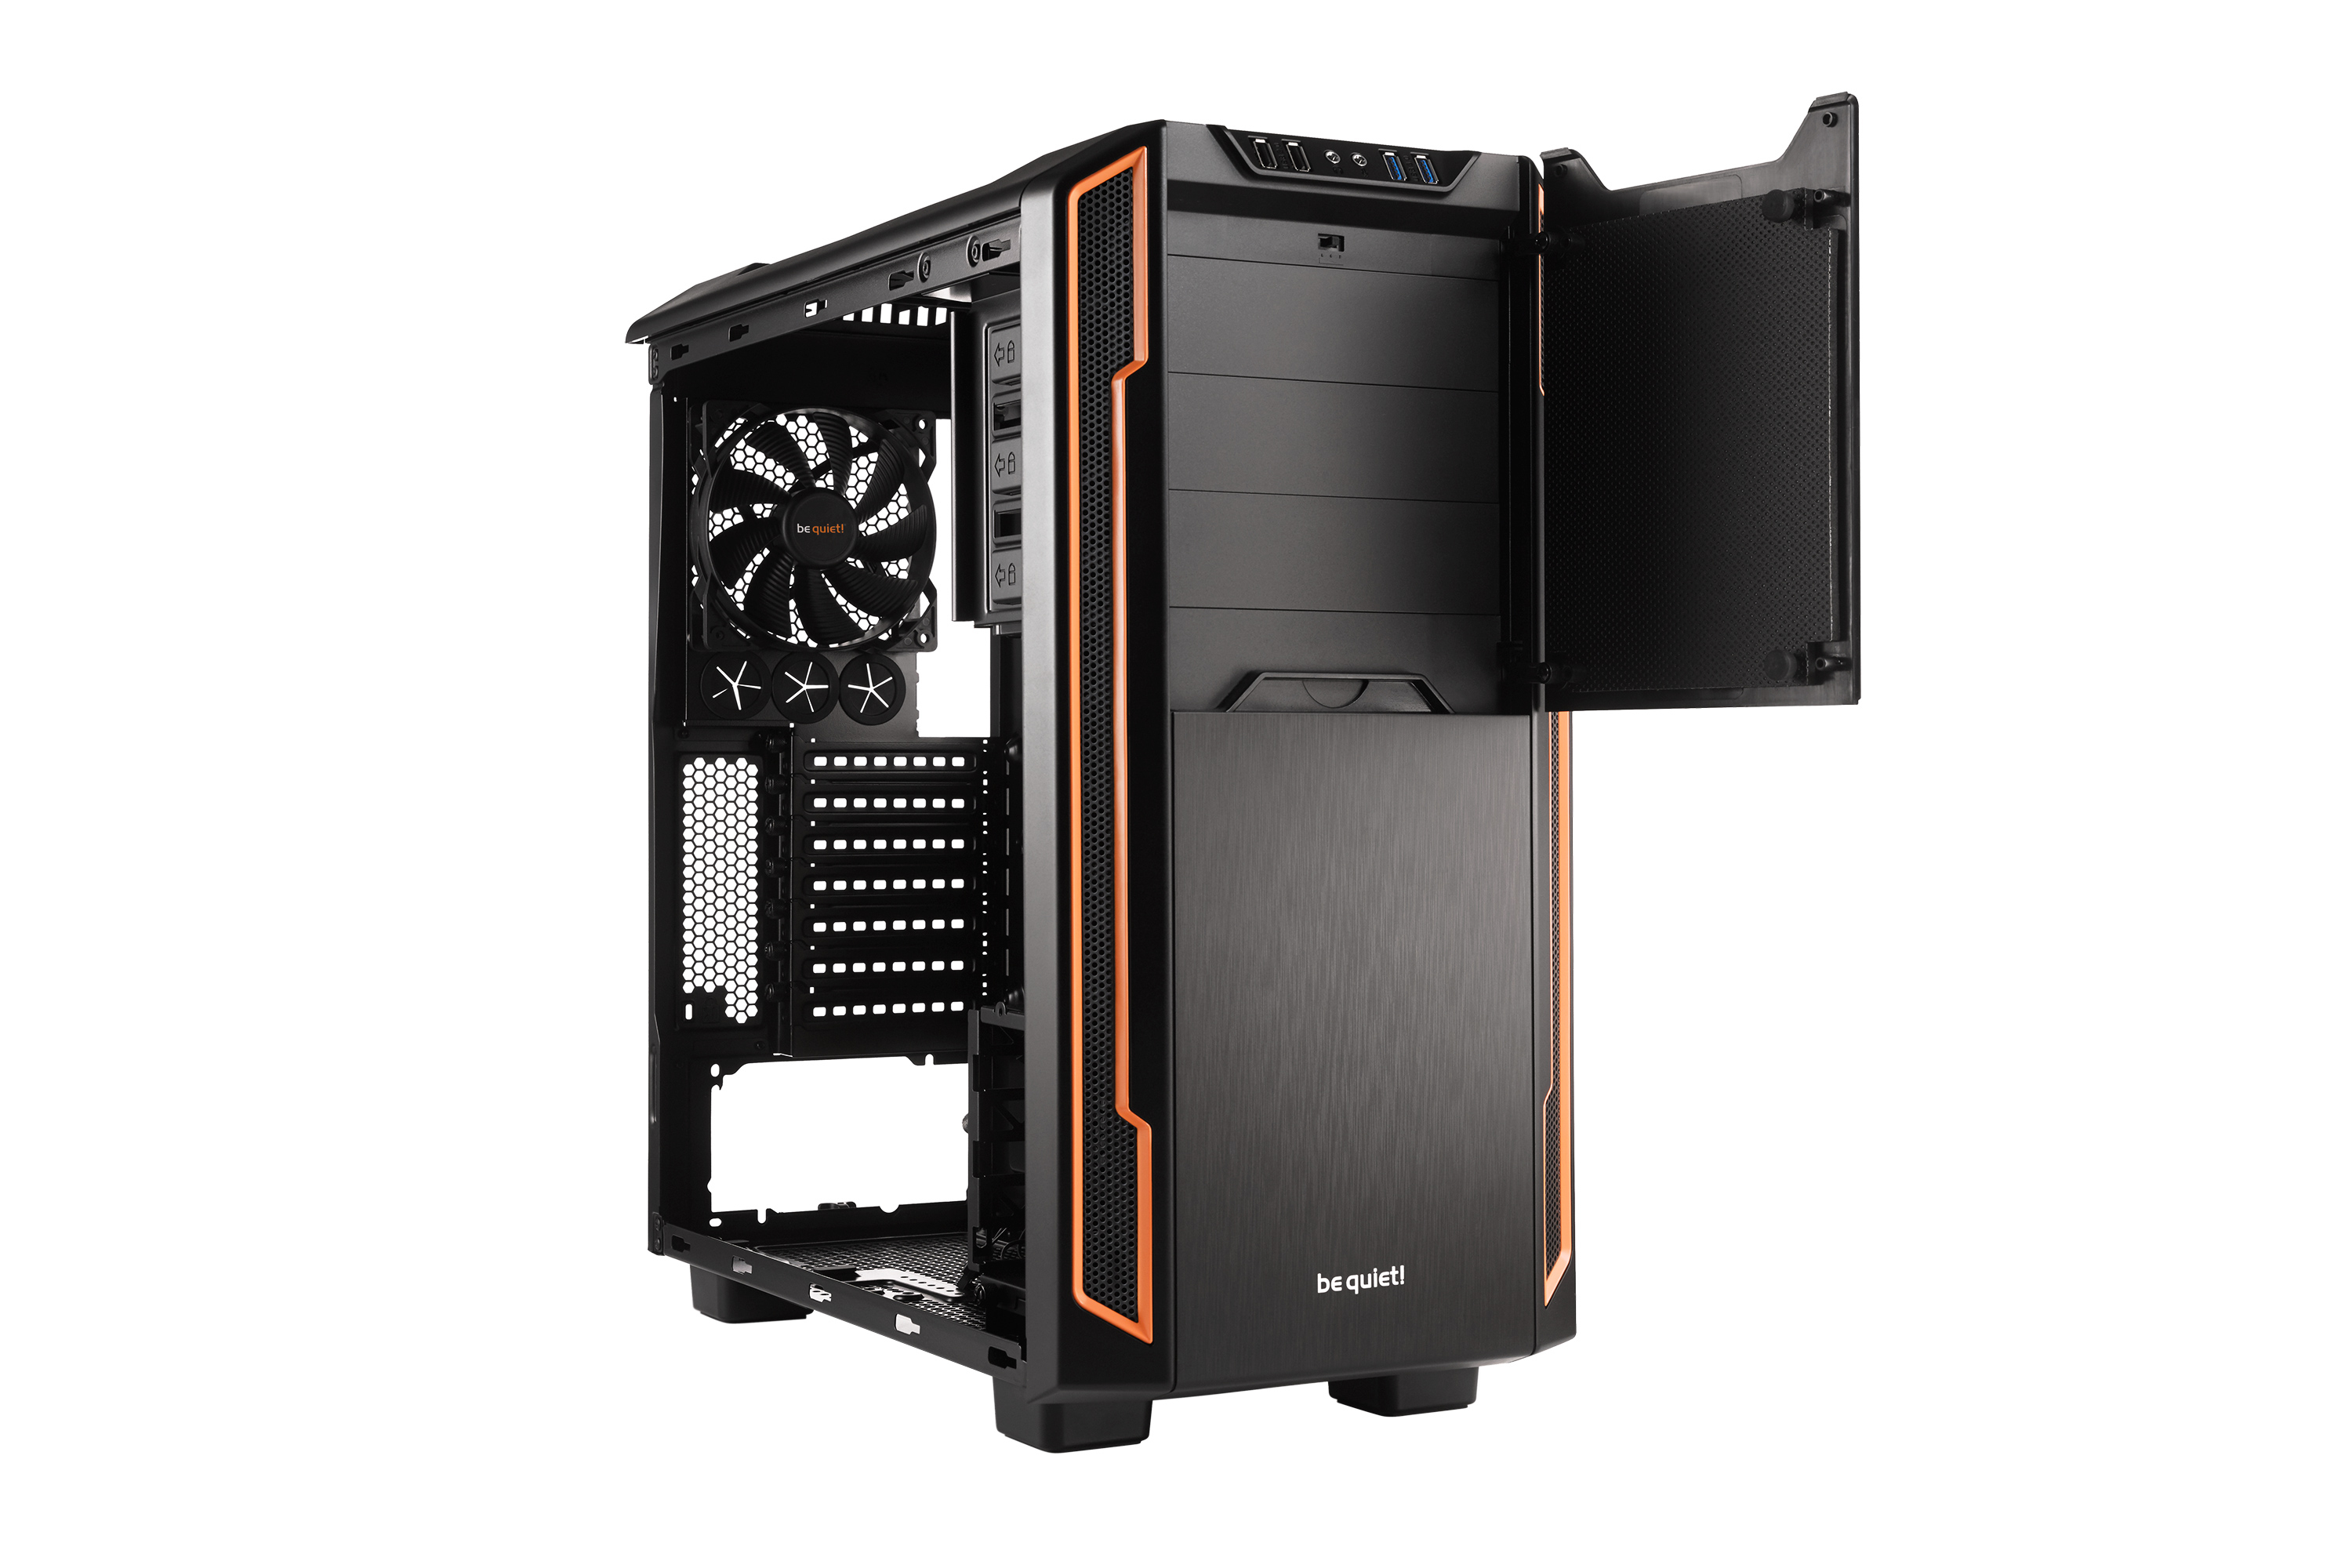 be quiet! Silent Base 600 Window Orange, 495 x 230 x 493, IO-panel 2x USB 3.0, 2x USB 2.0, HD Audio, 3x 5,25, 3x 3,5, 3x 2,5, inc 1x 140 mm en 1x 120 mm fan, dual air channel cooling